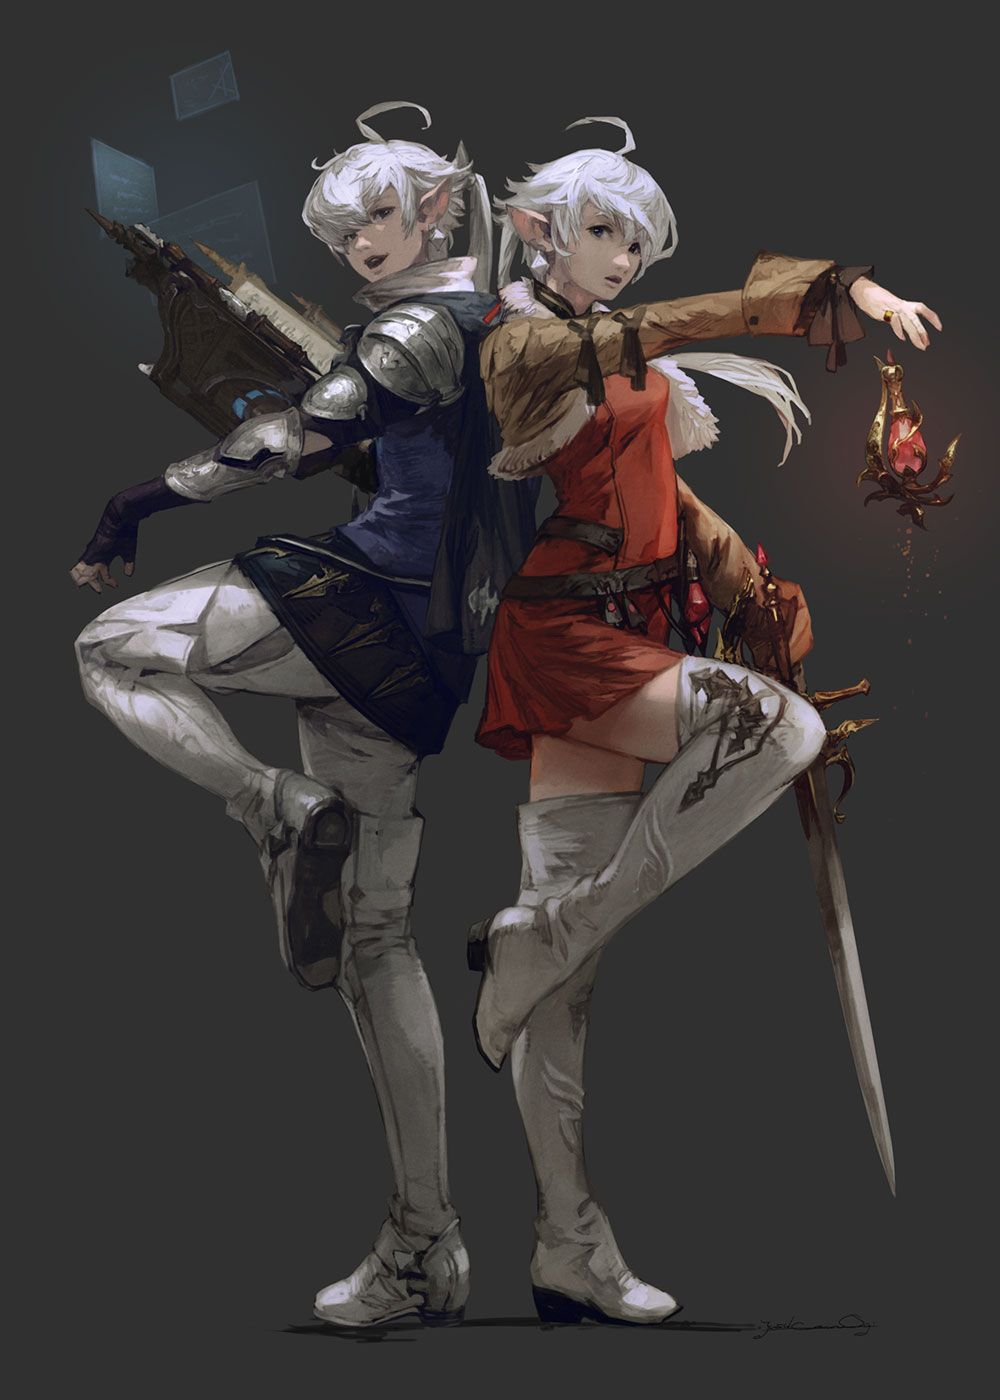 Alphinaud and Alisaie TGS Art from Final Fantasy XIV: Shadowbringers #art #artwork #gaming #videogames #gamer #gameart #conceptart #illustration #finalfantasy #ffxiv #ff14